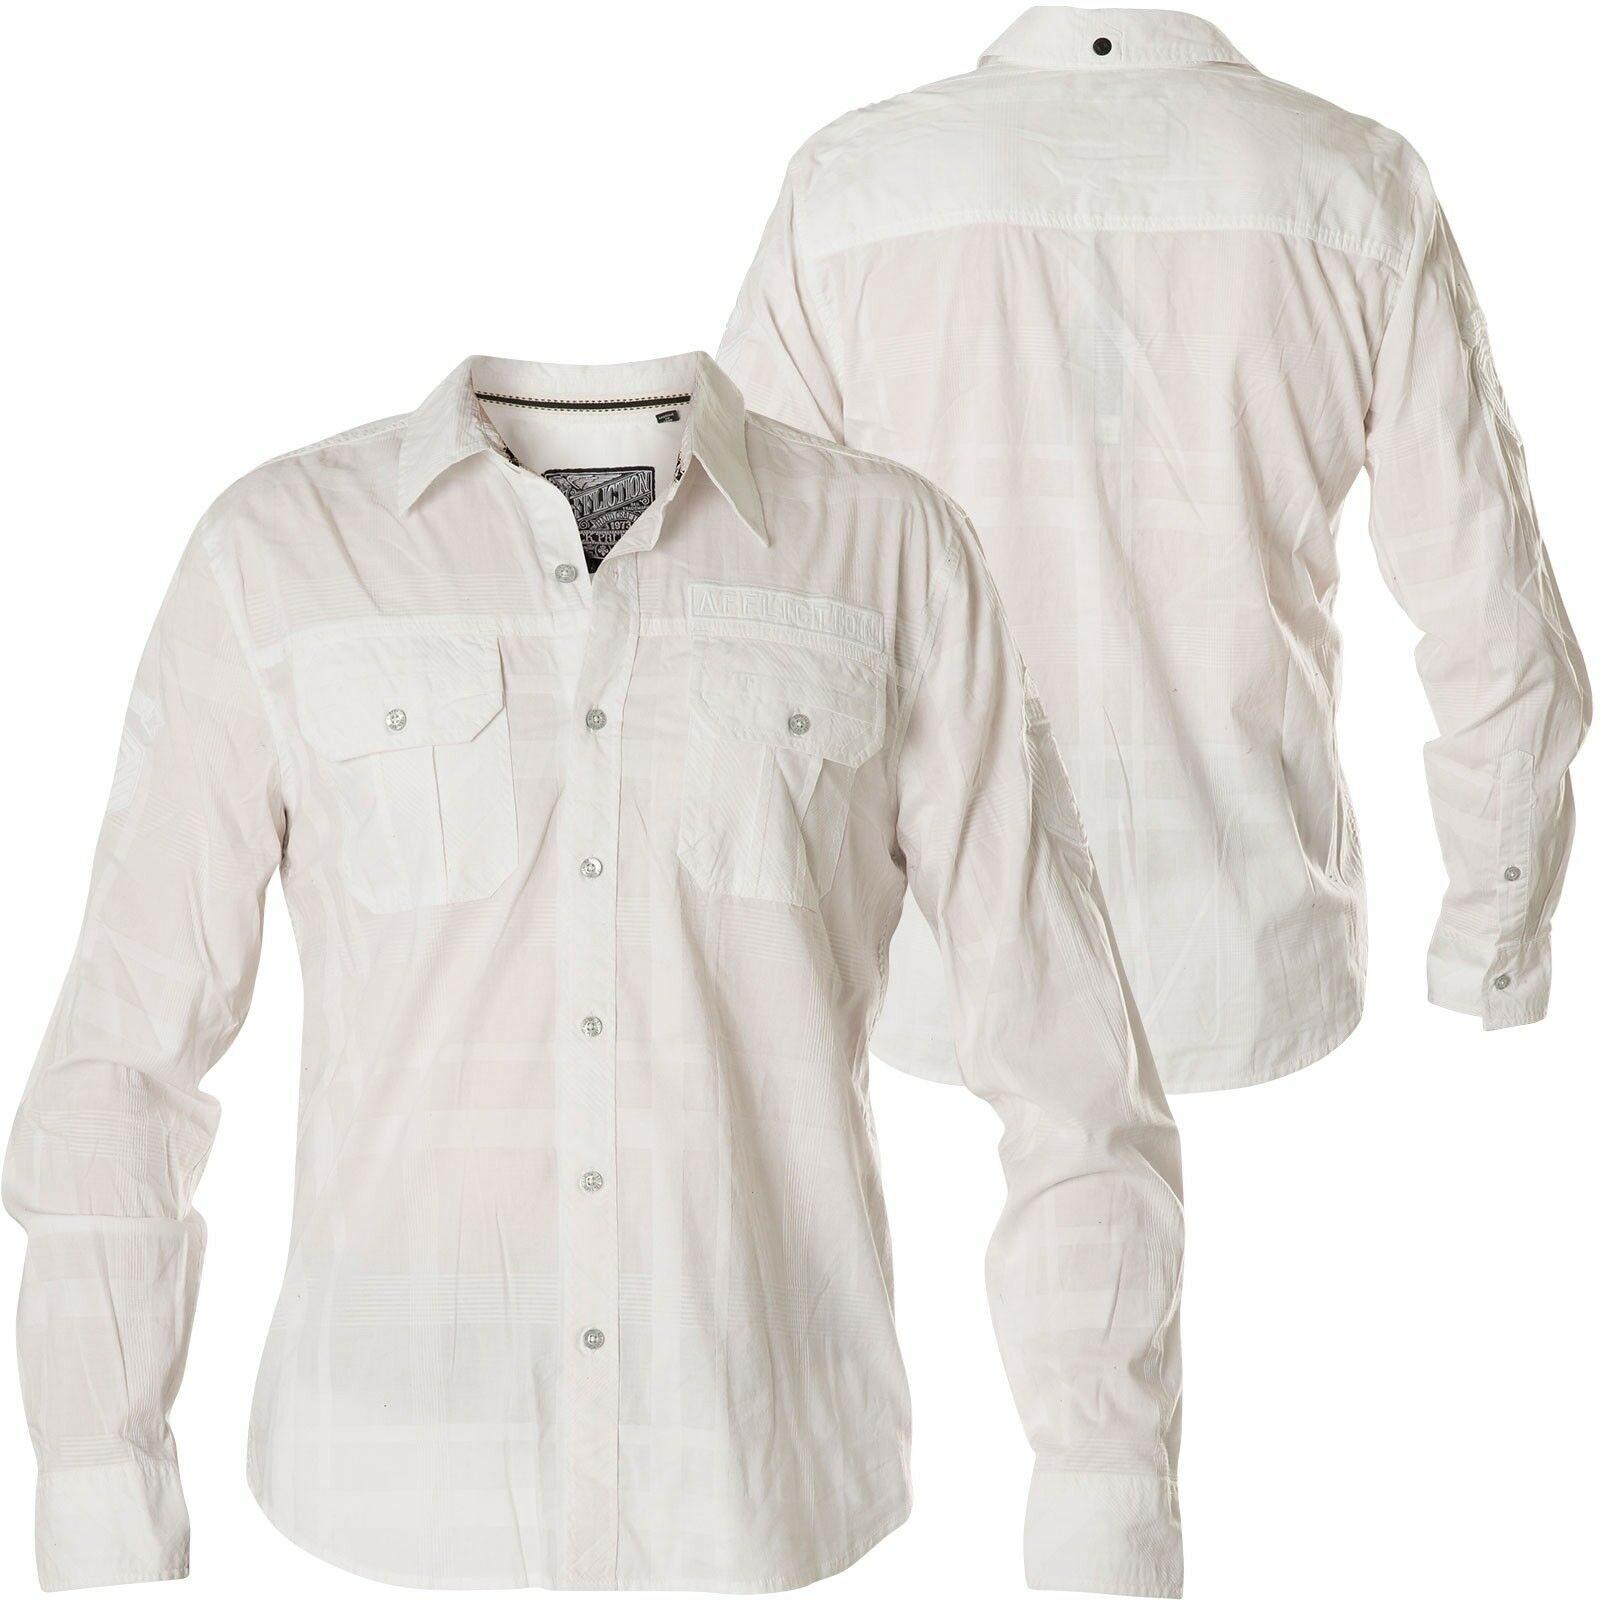 Affliction Camicia commend camicie bianco